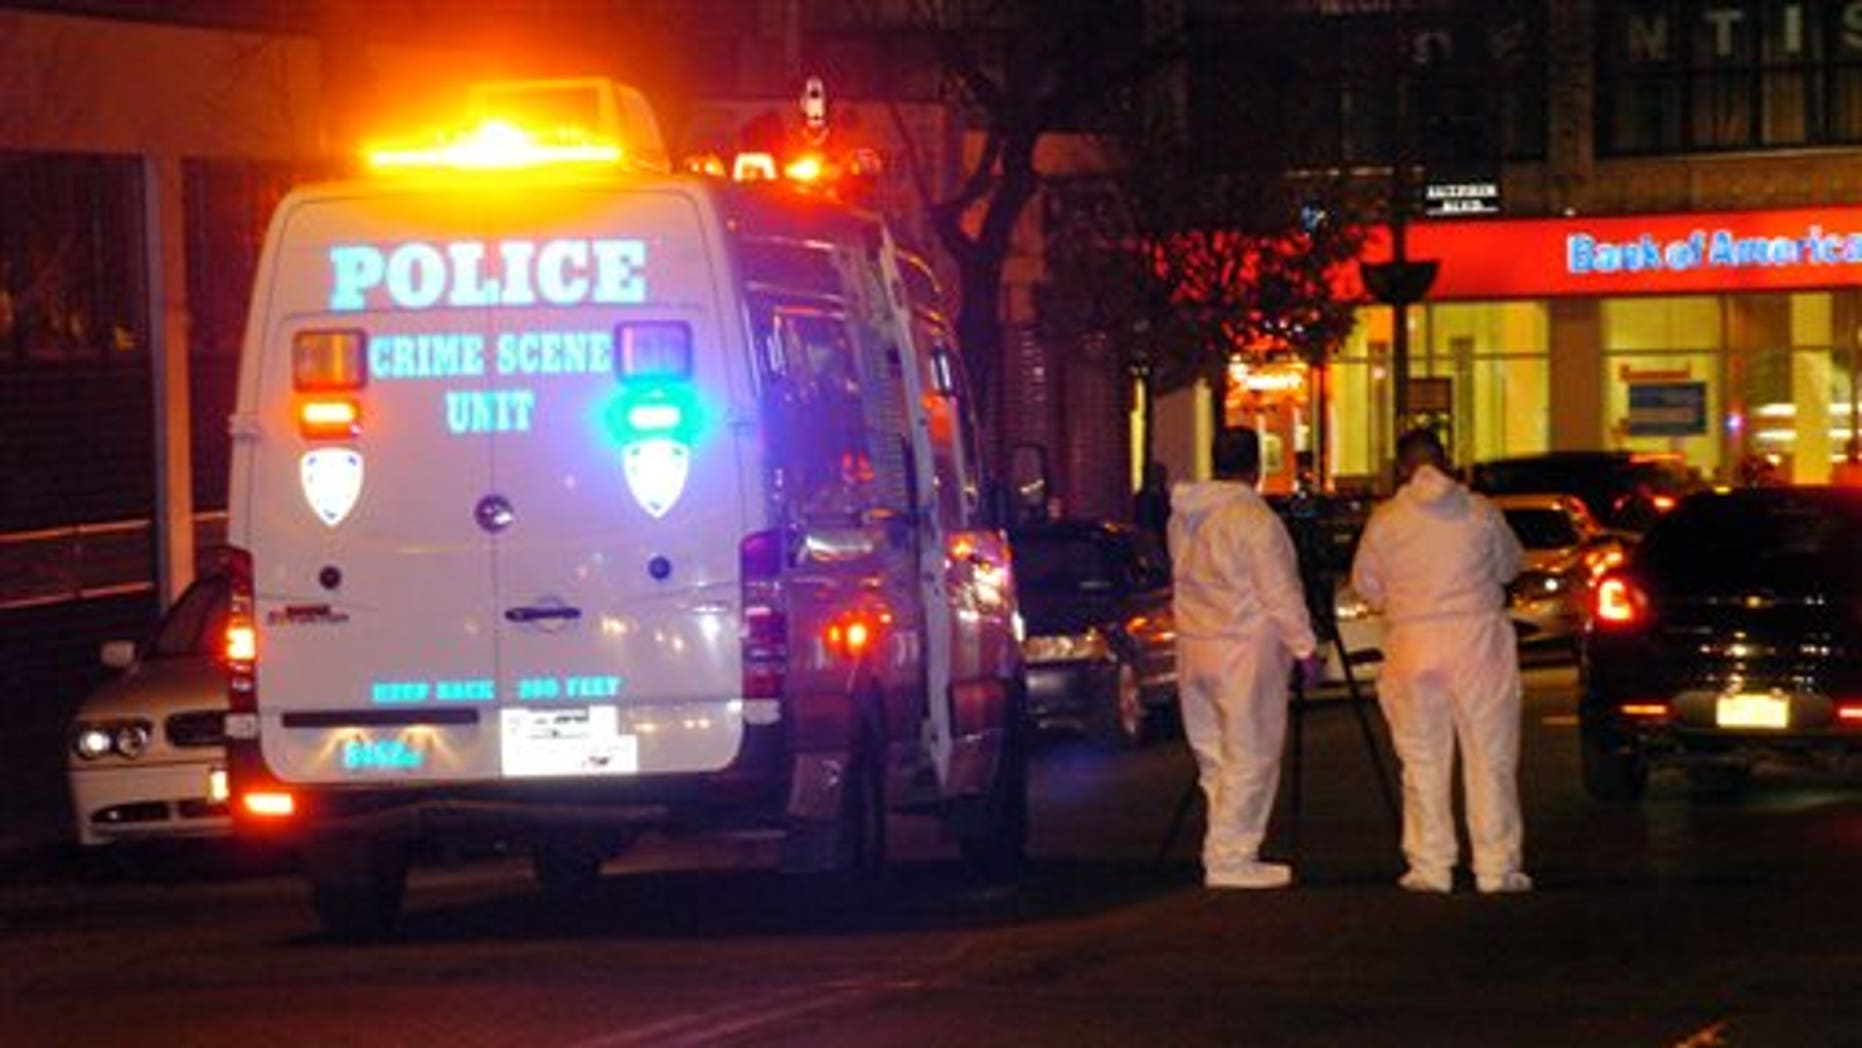 Police are investigating the deaths of a woman and two toddlers in the Queens borough of New York, Sunday, Jan. 19, 2014. Police say the bodies of a 1-year-old child, a 3-year-old child and a 21-year-old female were found in an apartment on Sutphin Blvd. in the Jamaica section of the borough. (AP Photo/David Torres)